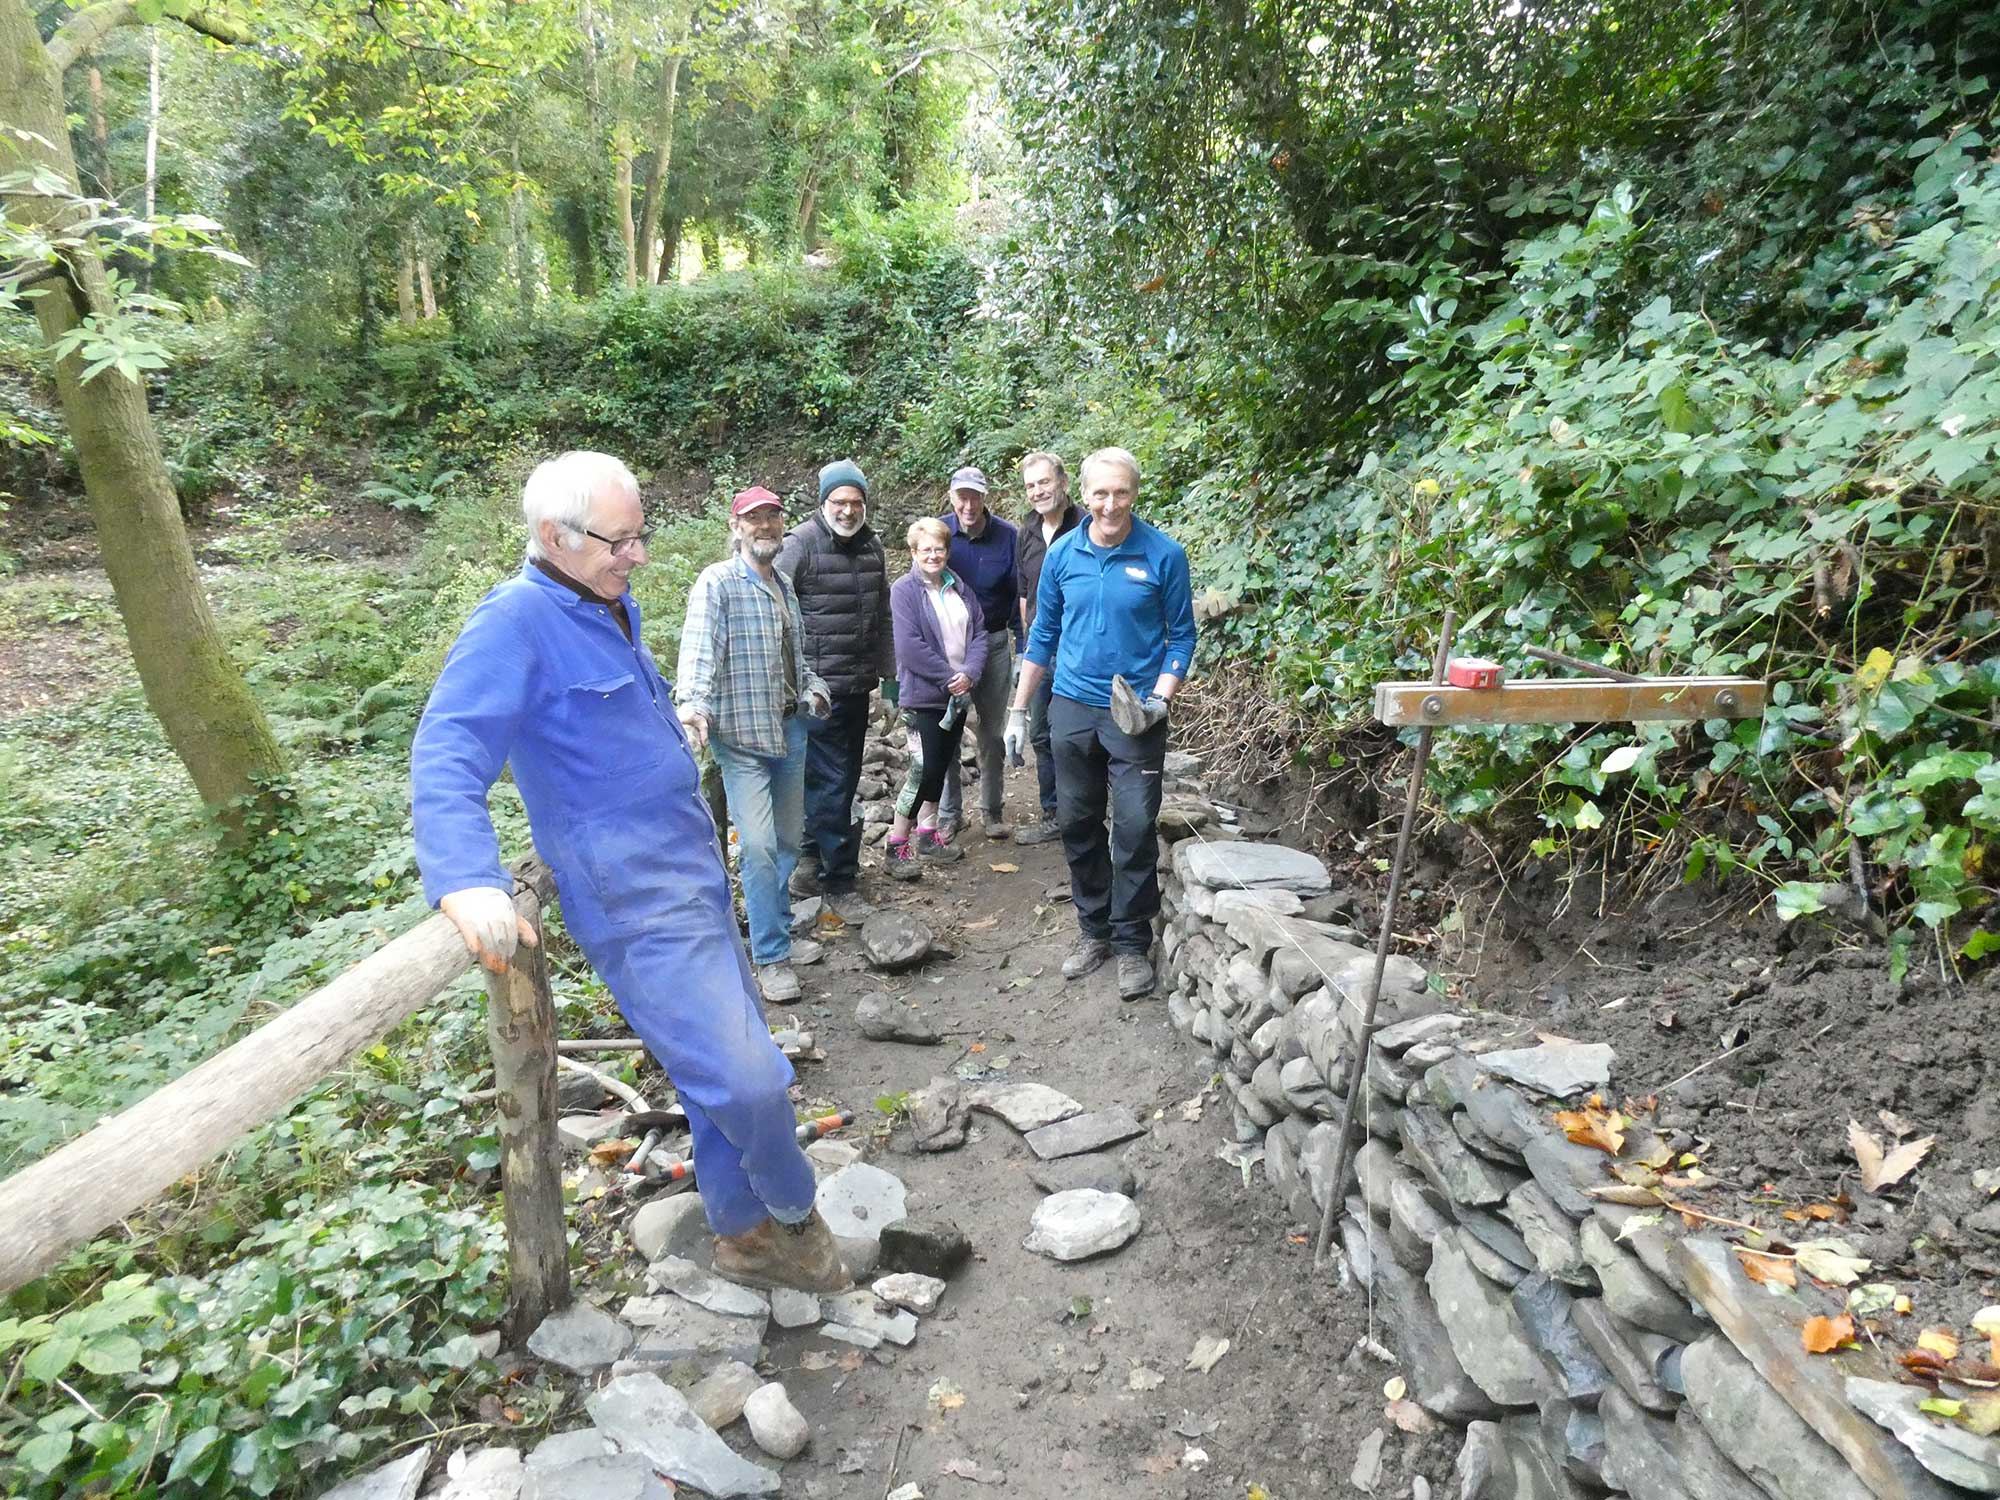 Volunteers restoring a dry stone wall